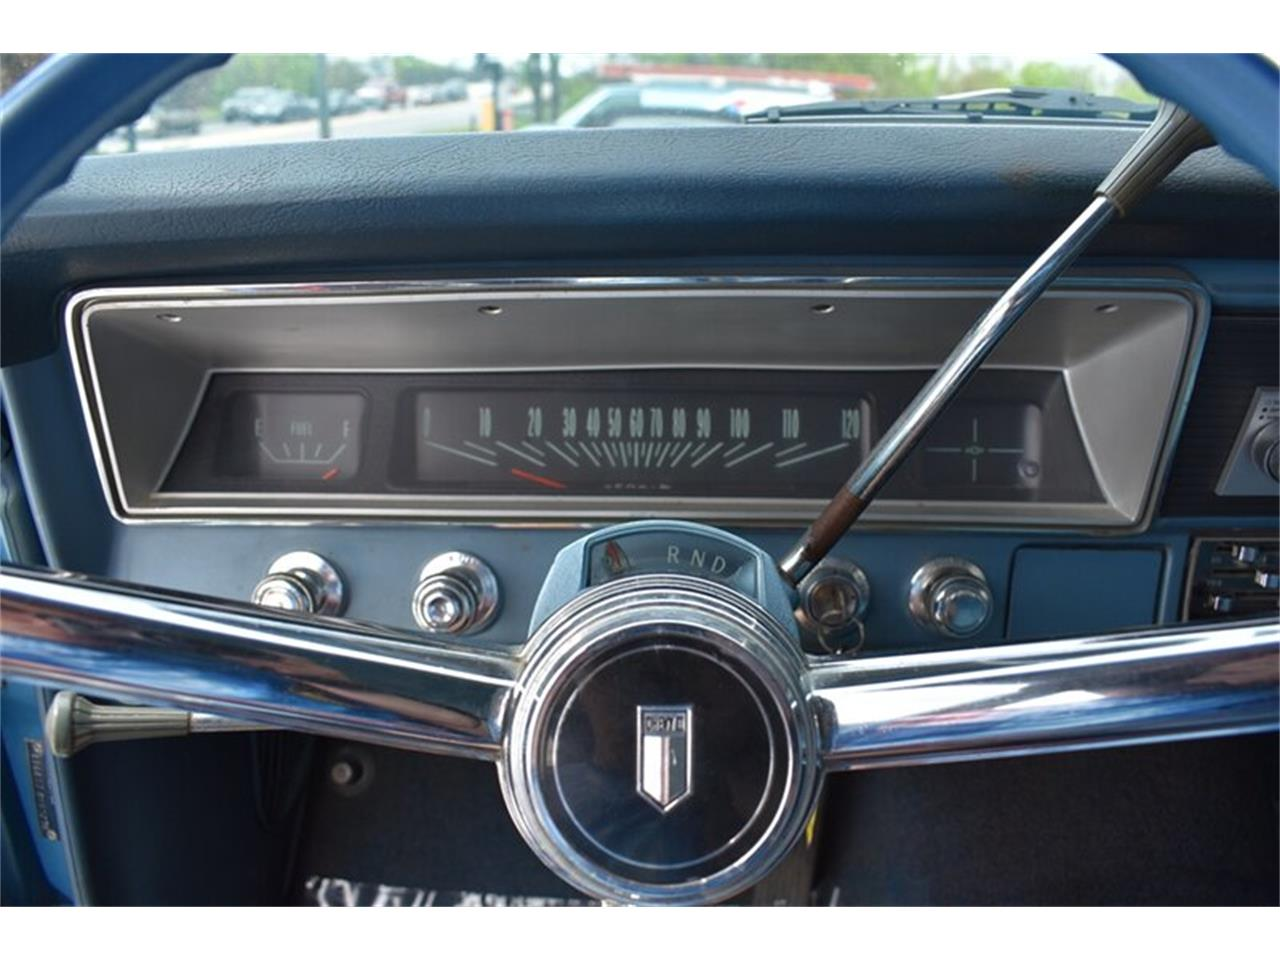 Large Picture of Classic '67 Nova - $13,900.00 Offered by Mershon's - Q2I5